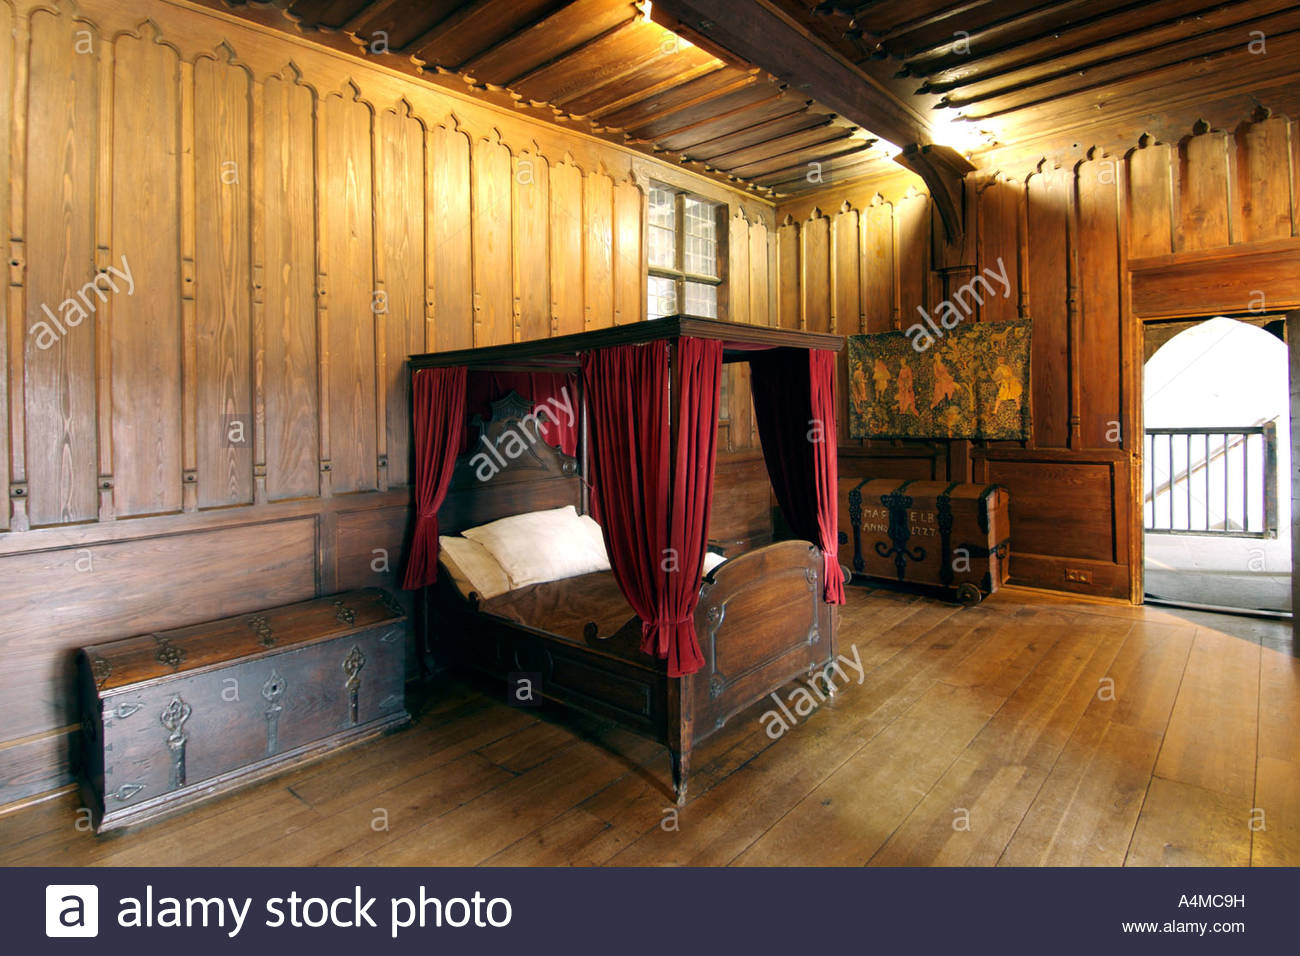 Middle Ages Bed Stock Photos & Middle Ages Bed Stock Images.